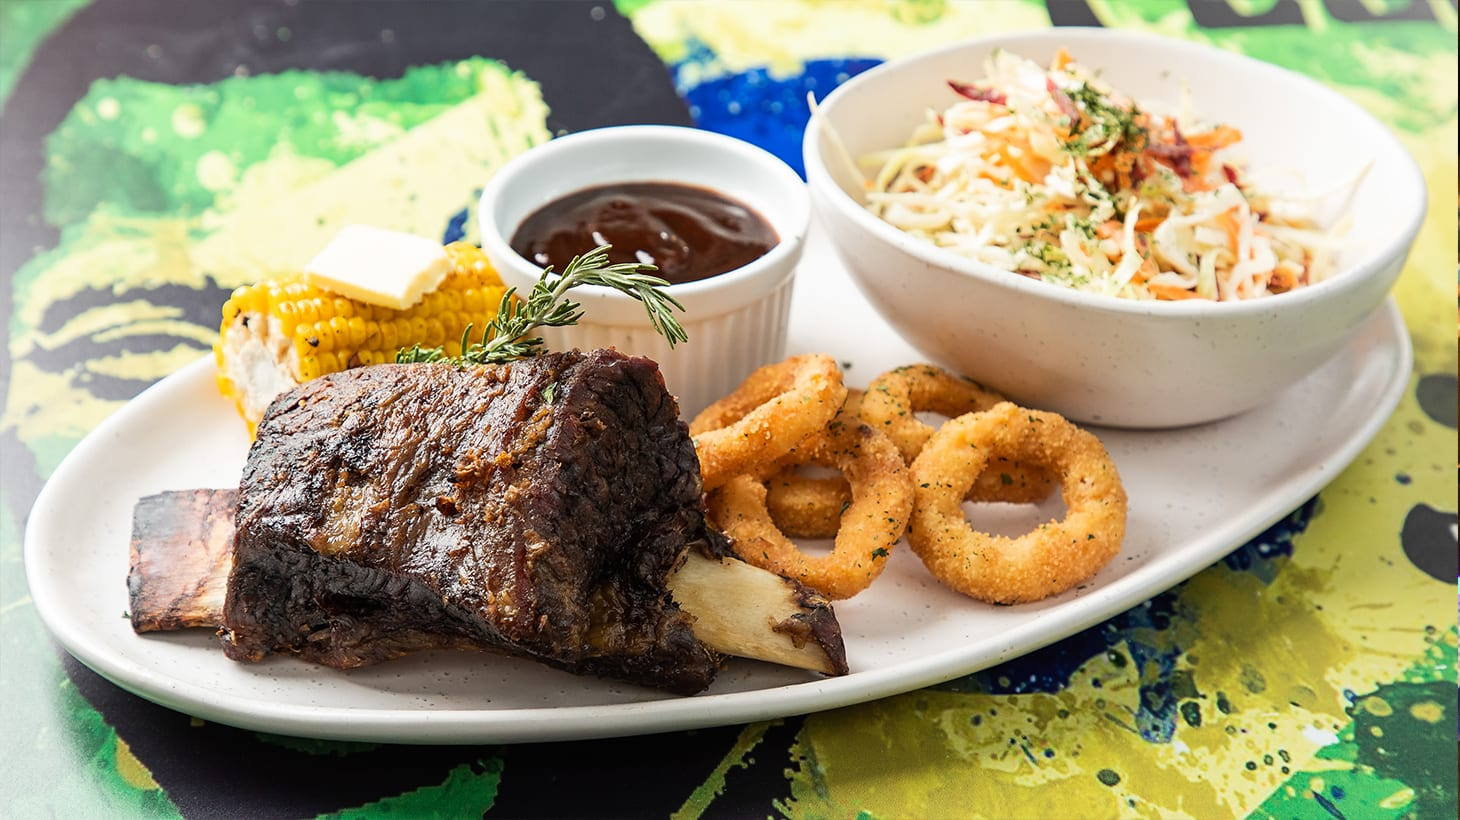 Beachfront All-You-Can-Eat Brazilian BBQ Buffet at No.1 Surfers Paradise Restaurant! Brazilian Flame Bar and Grill Surfers Paradise